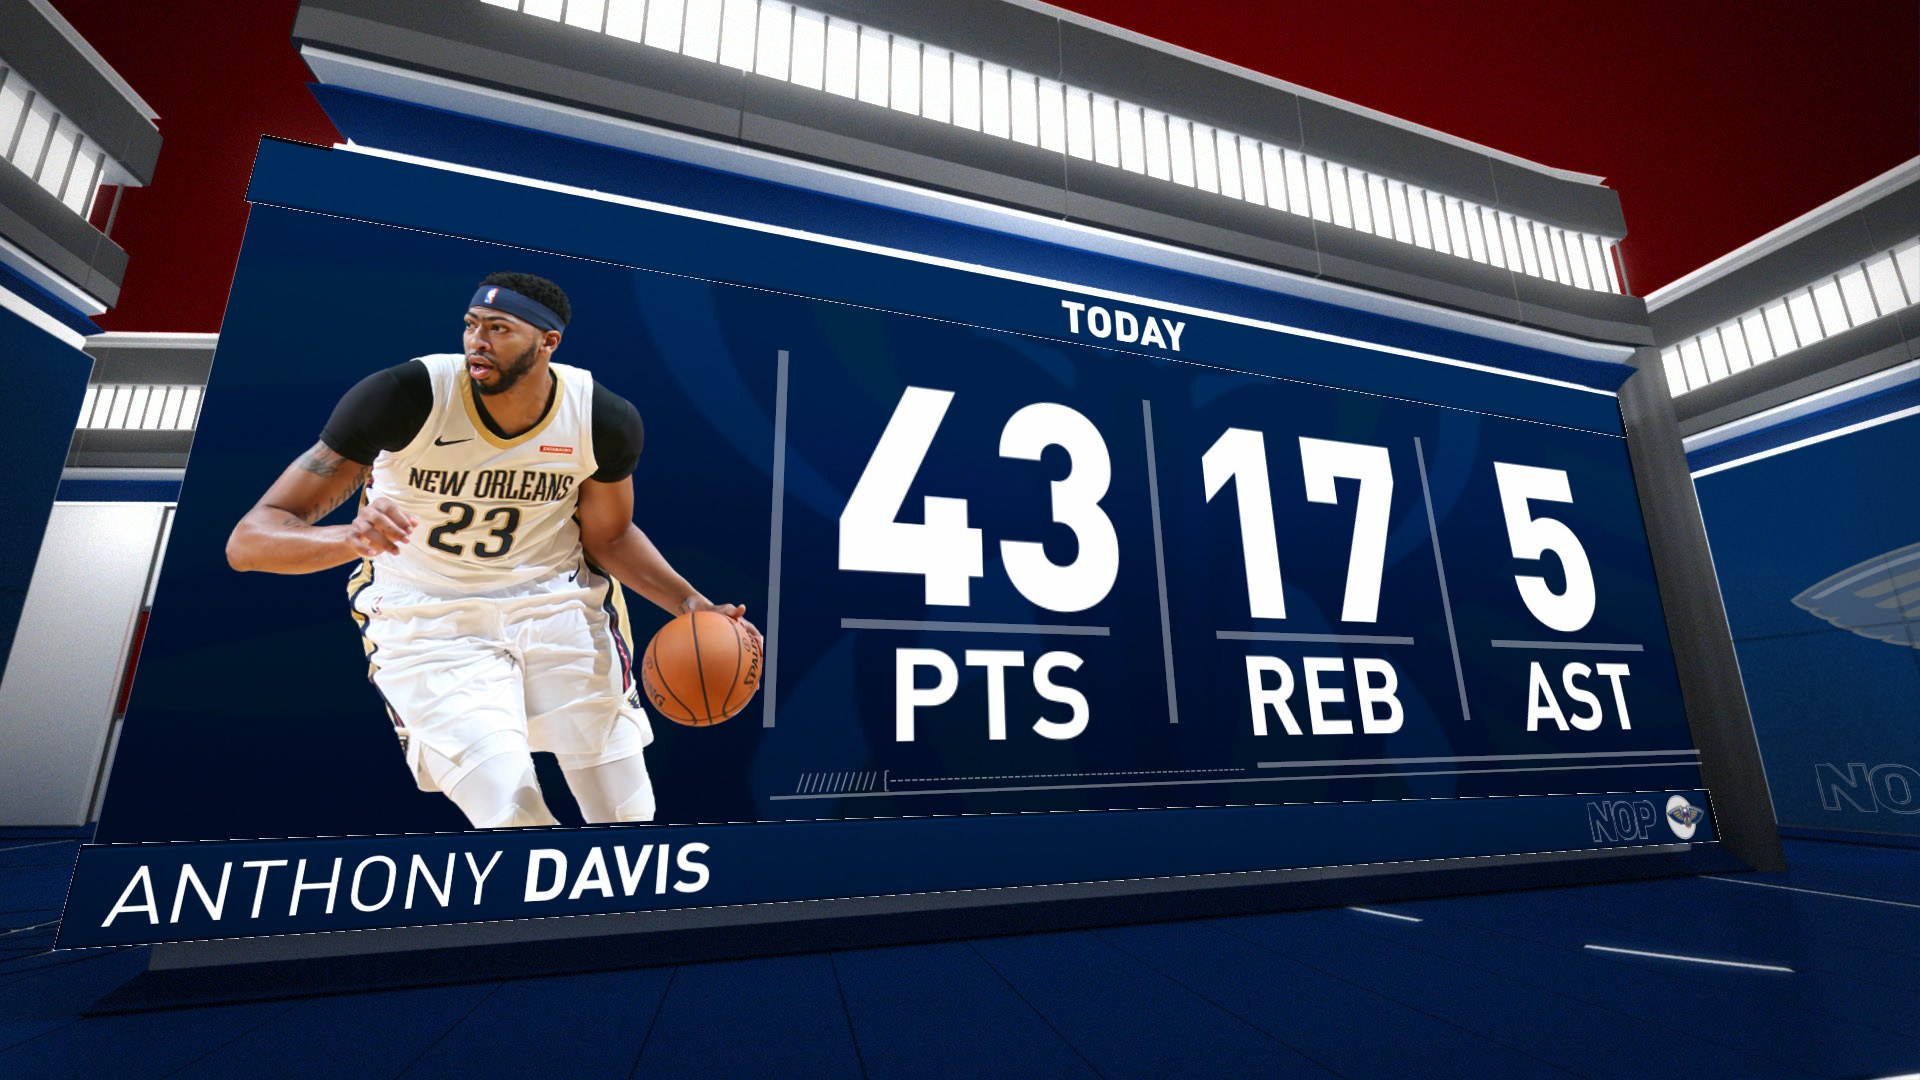 Stat Leader: Highlights of Anthony Davis' 43 points vs. New York Knicks